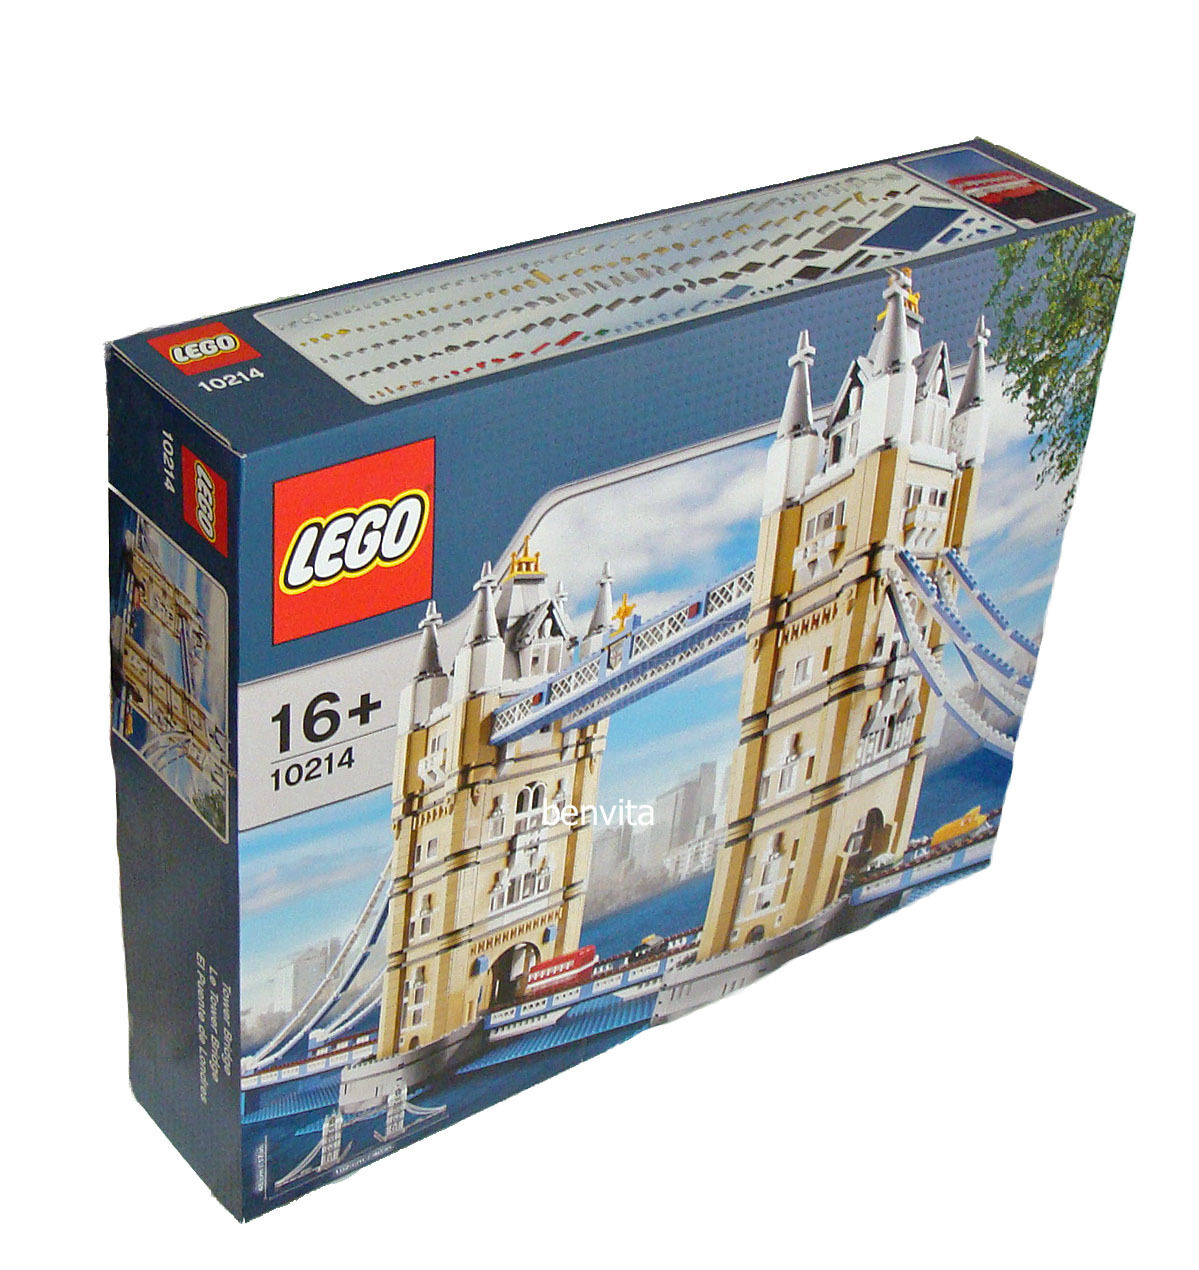 Lego® 10214 - Tower Bridge 4287 Teile 16+ - Neu